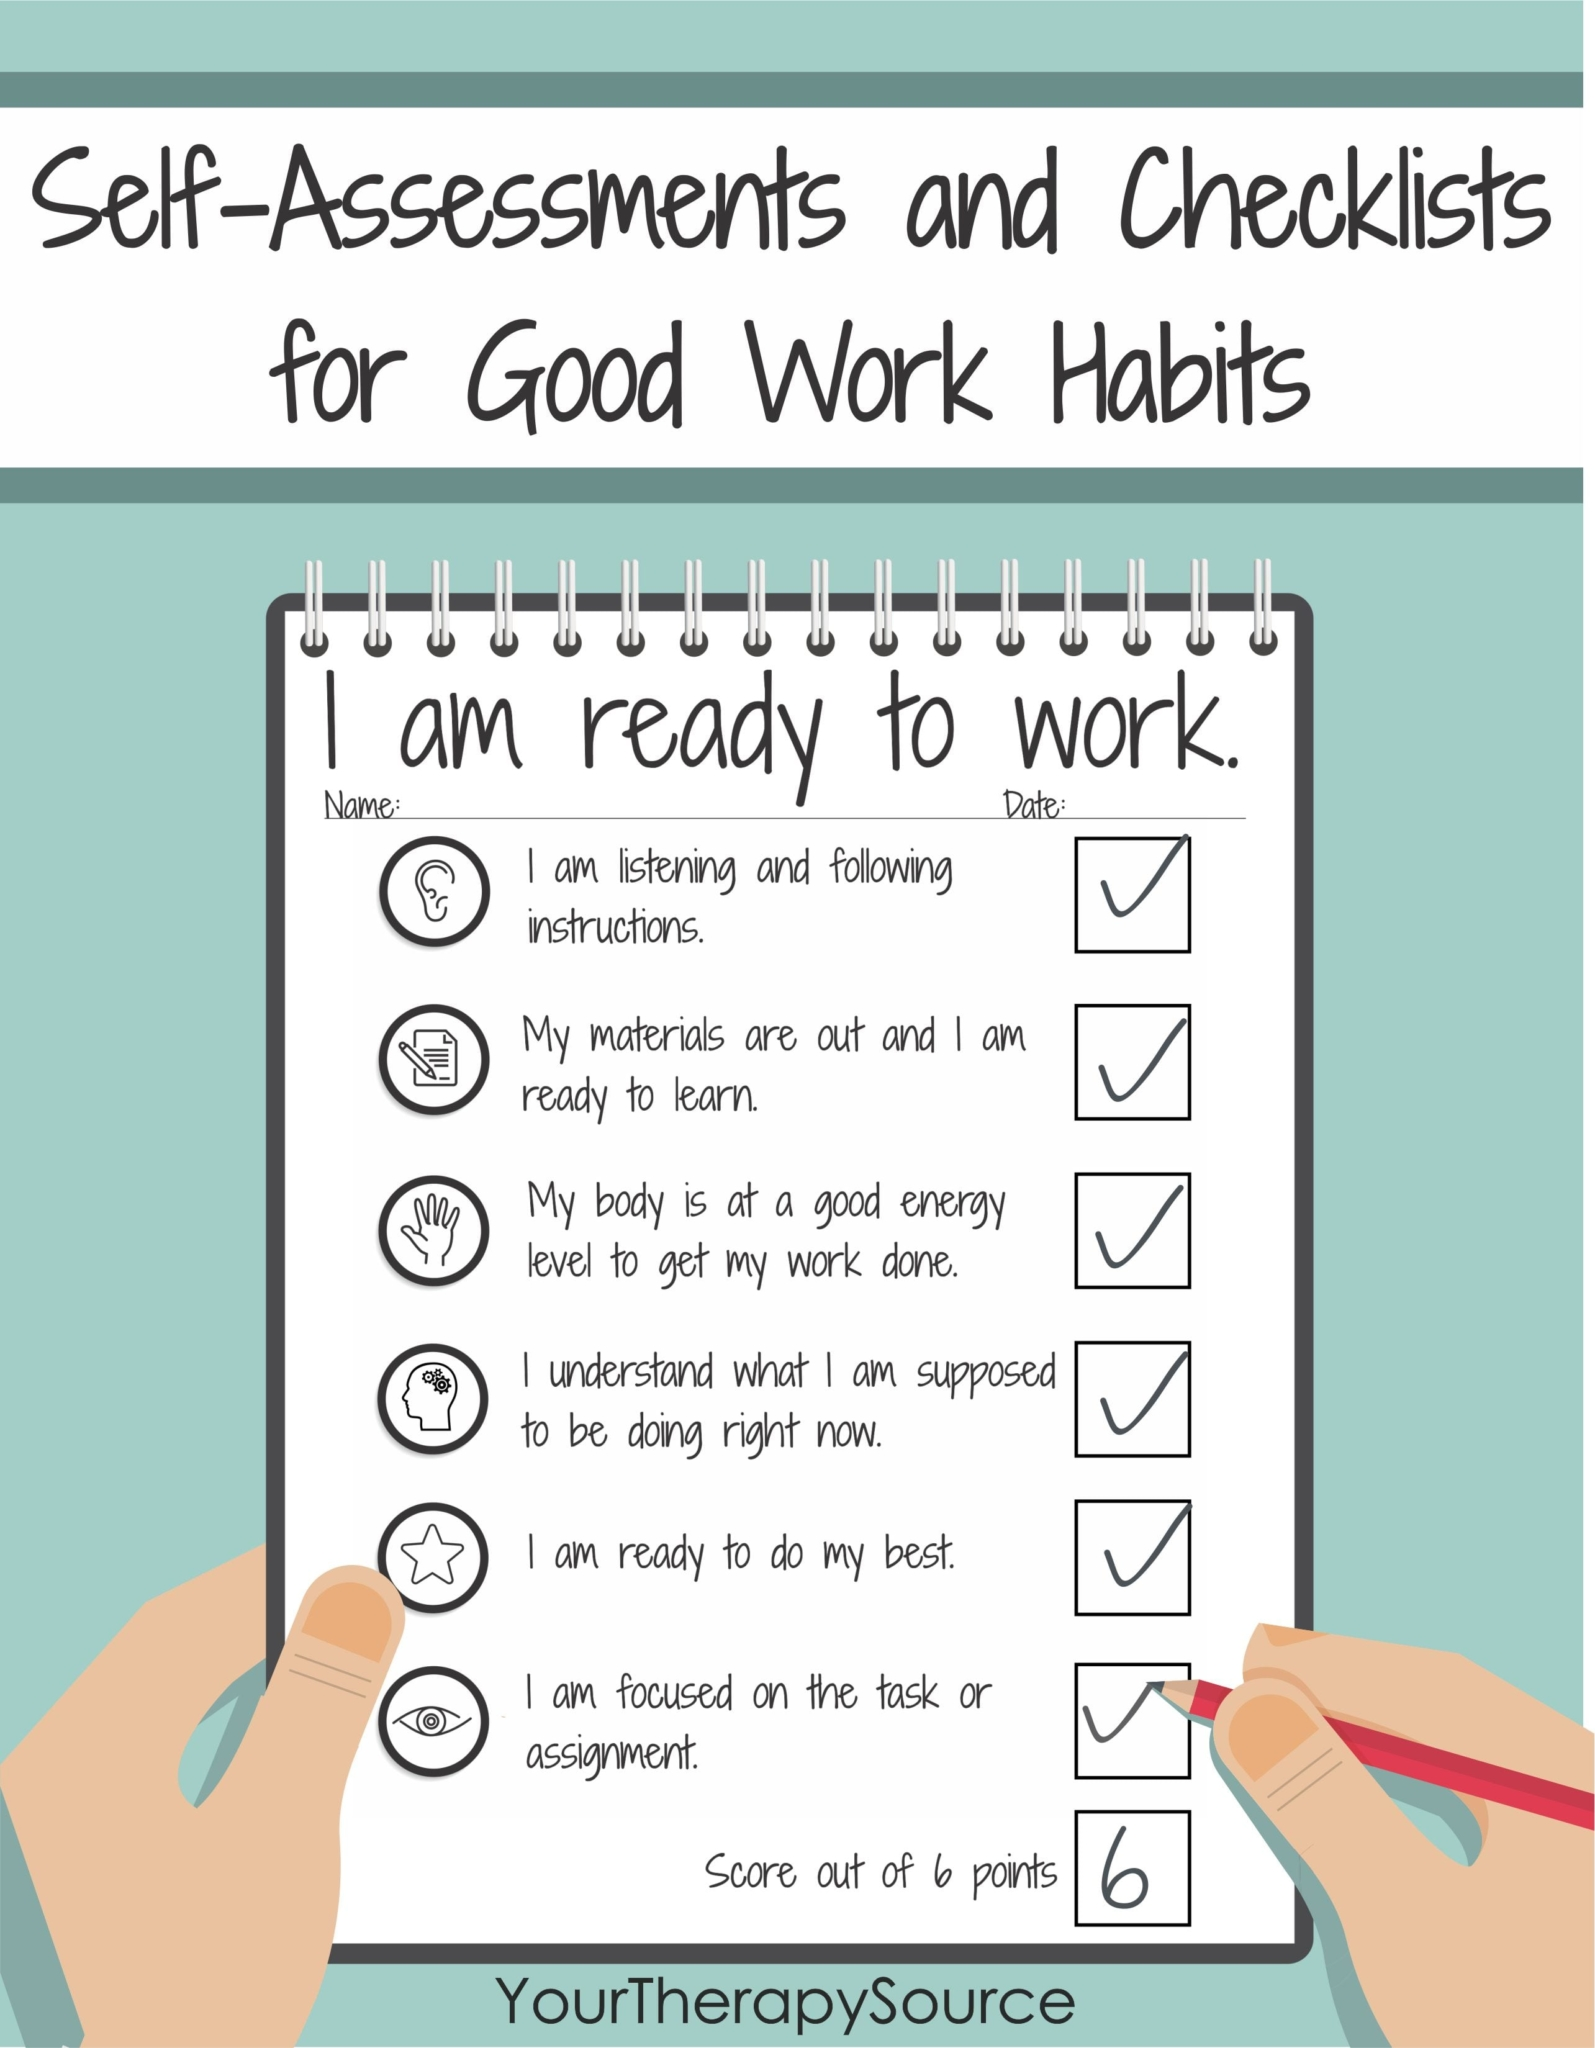 Do you work with students who struggle to be motivated, engaged, persistent, organized, or self-regulate?  These are the skills that students need to achieve success in school.  The Self-Assessments and Checklists for Good Work Habits help improve self-regulation skills, maintain classroom expectations, routines, work habits, and behaviors.